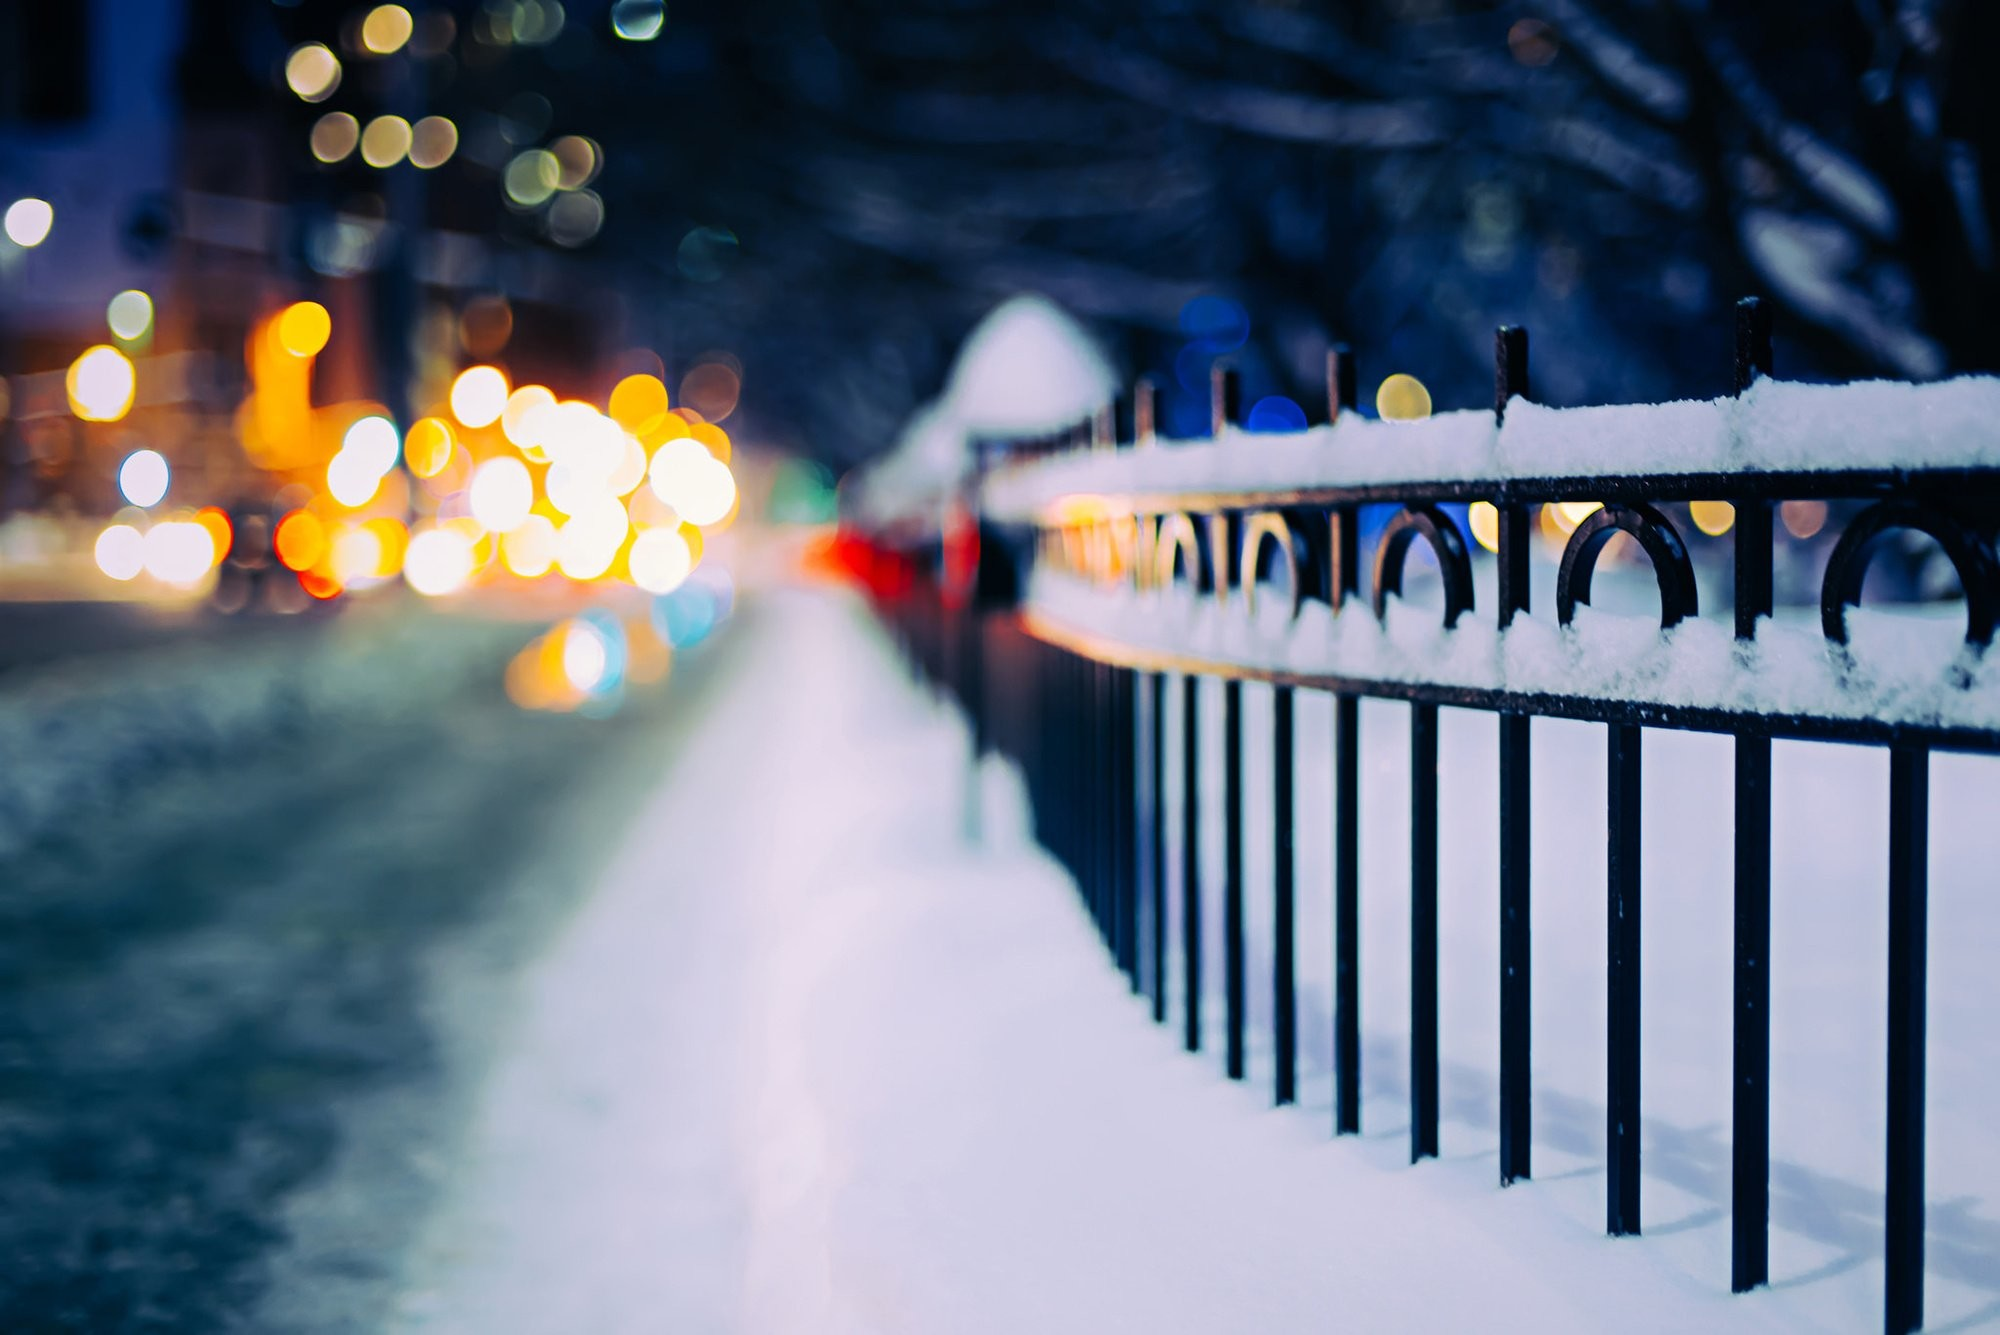 City bokeh winter snow beauty wallpaper | | 802035 | WallpaperUP